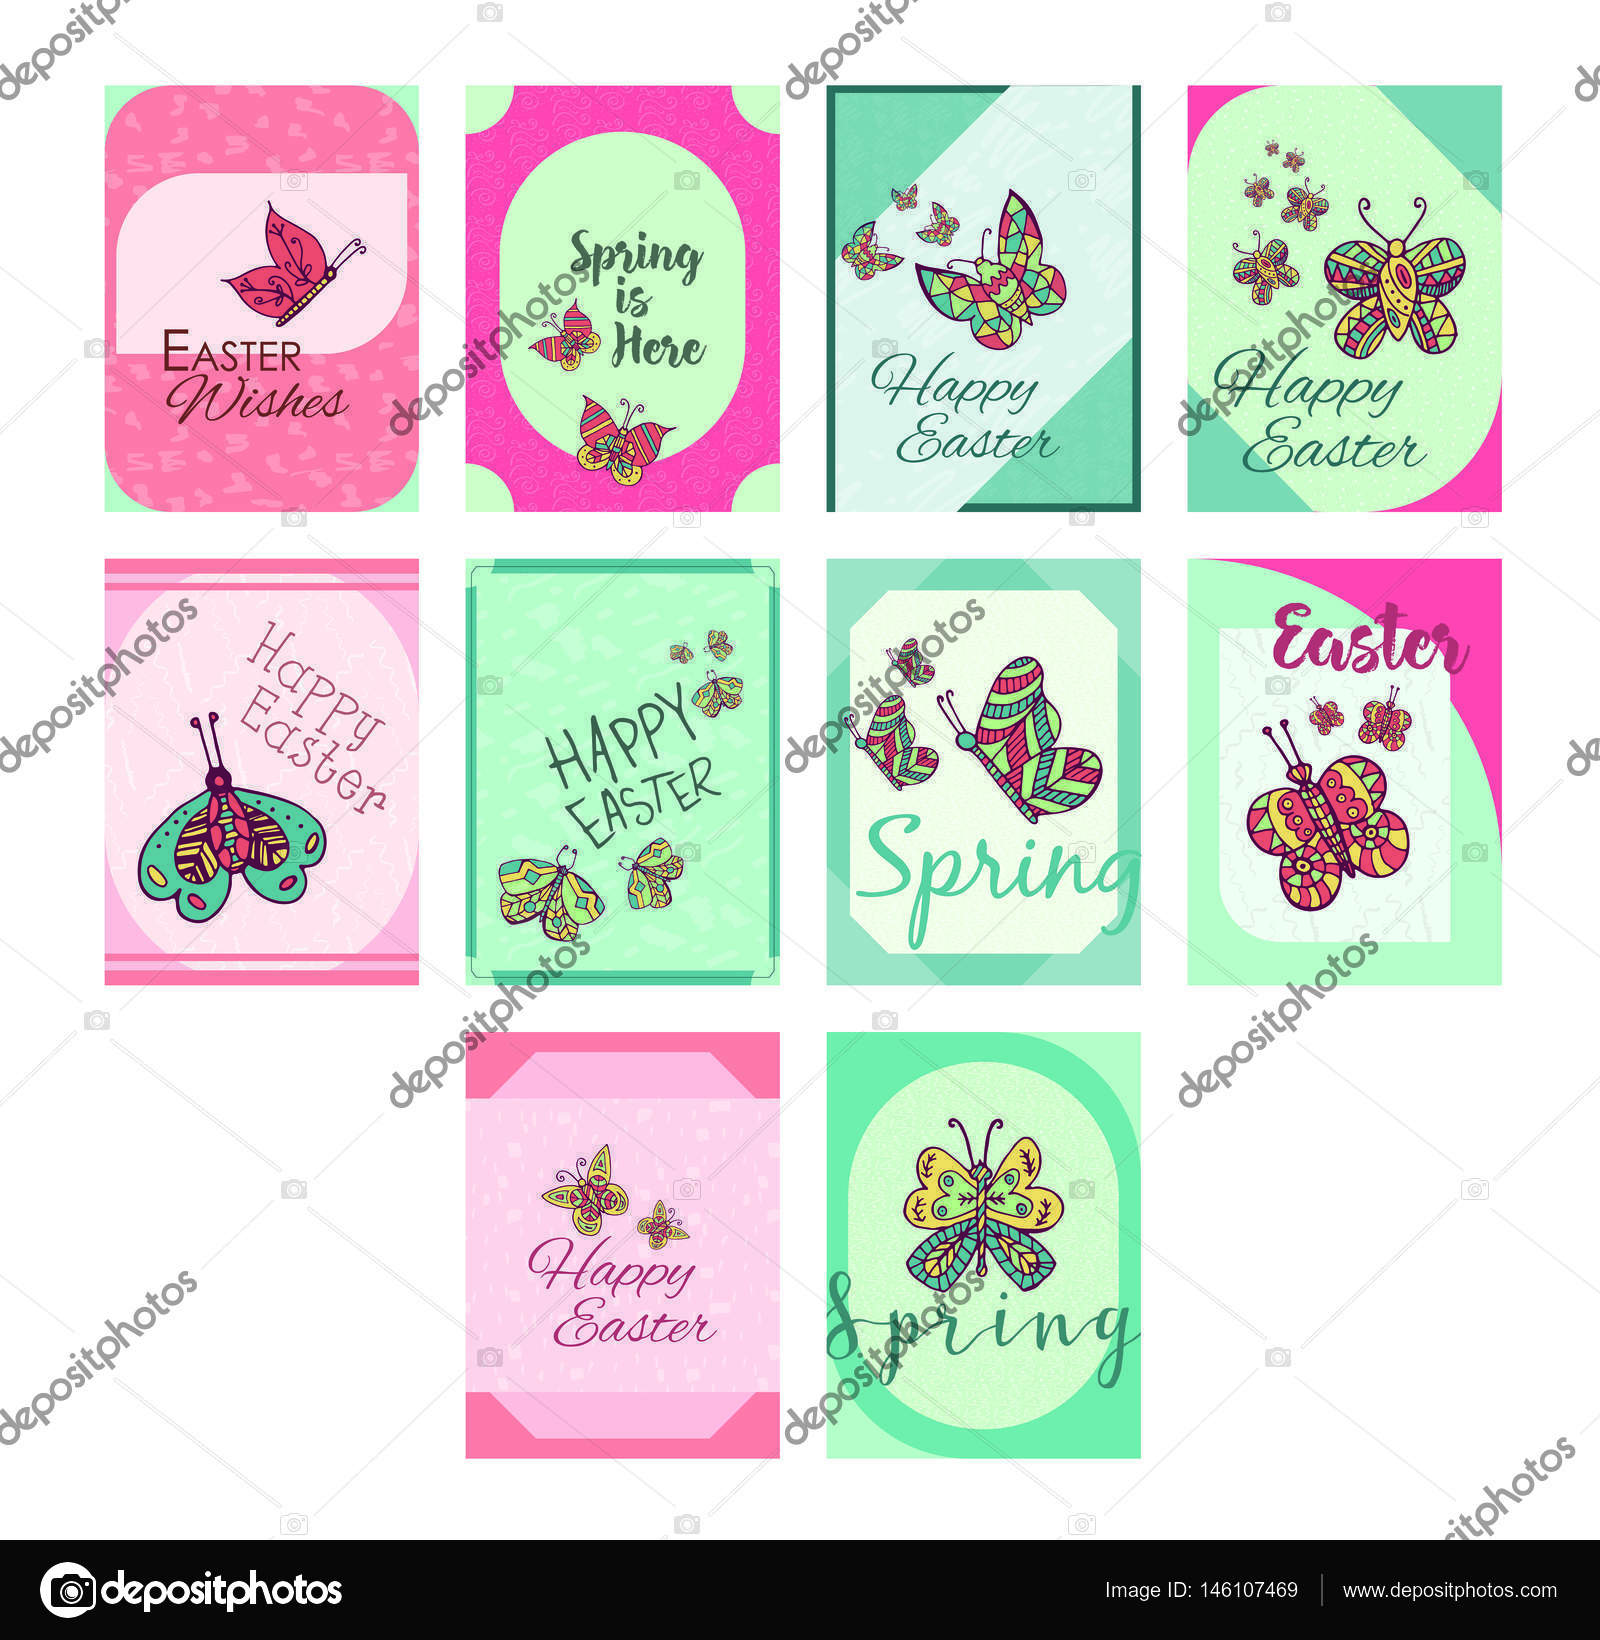 Greeting Cards With Easter And Spring Messages Stock Vector